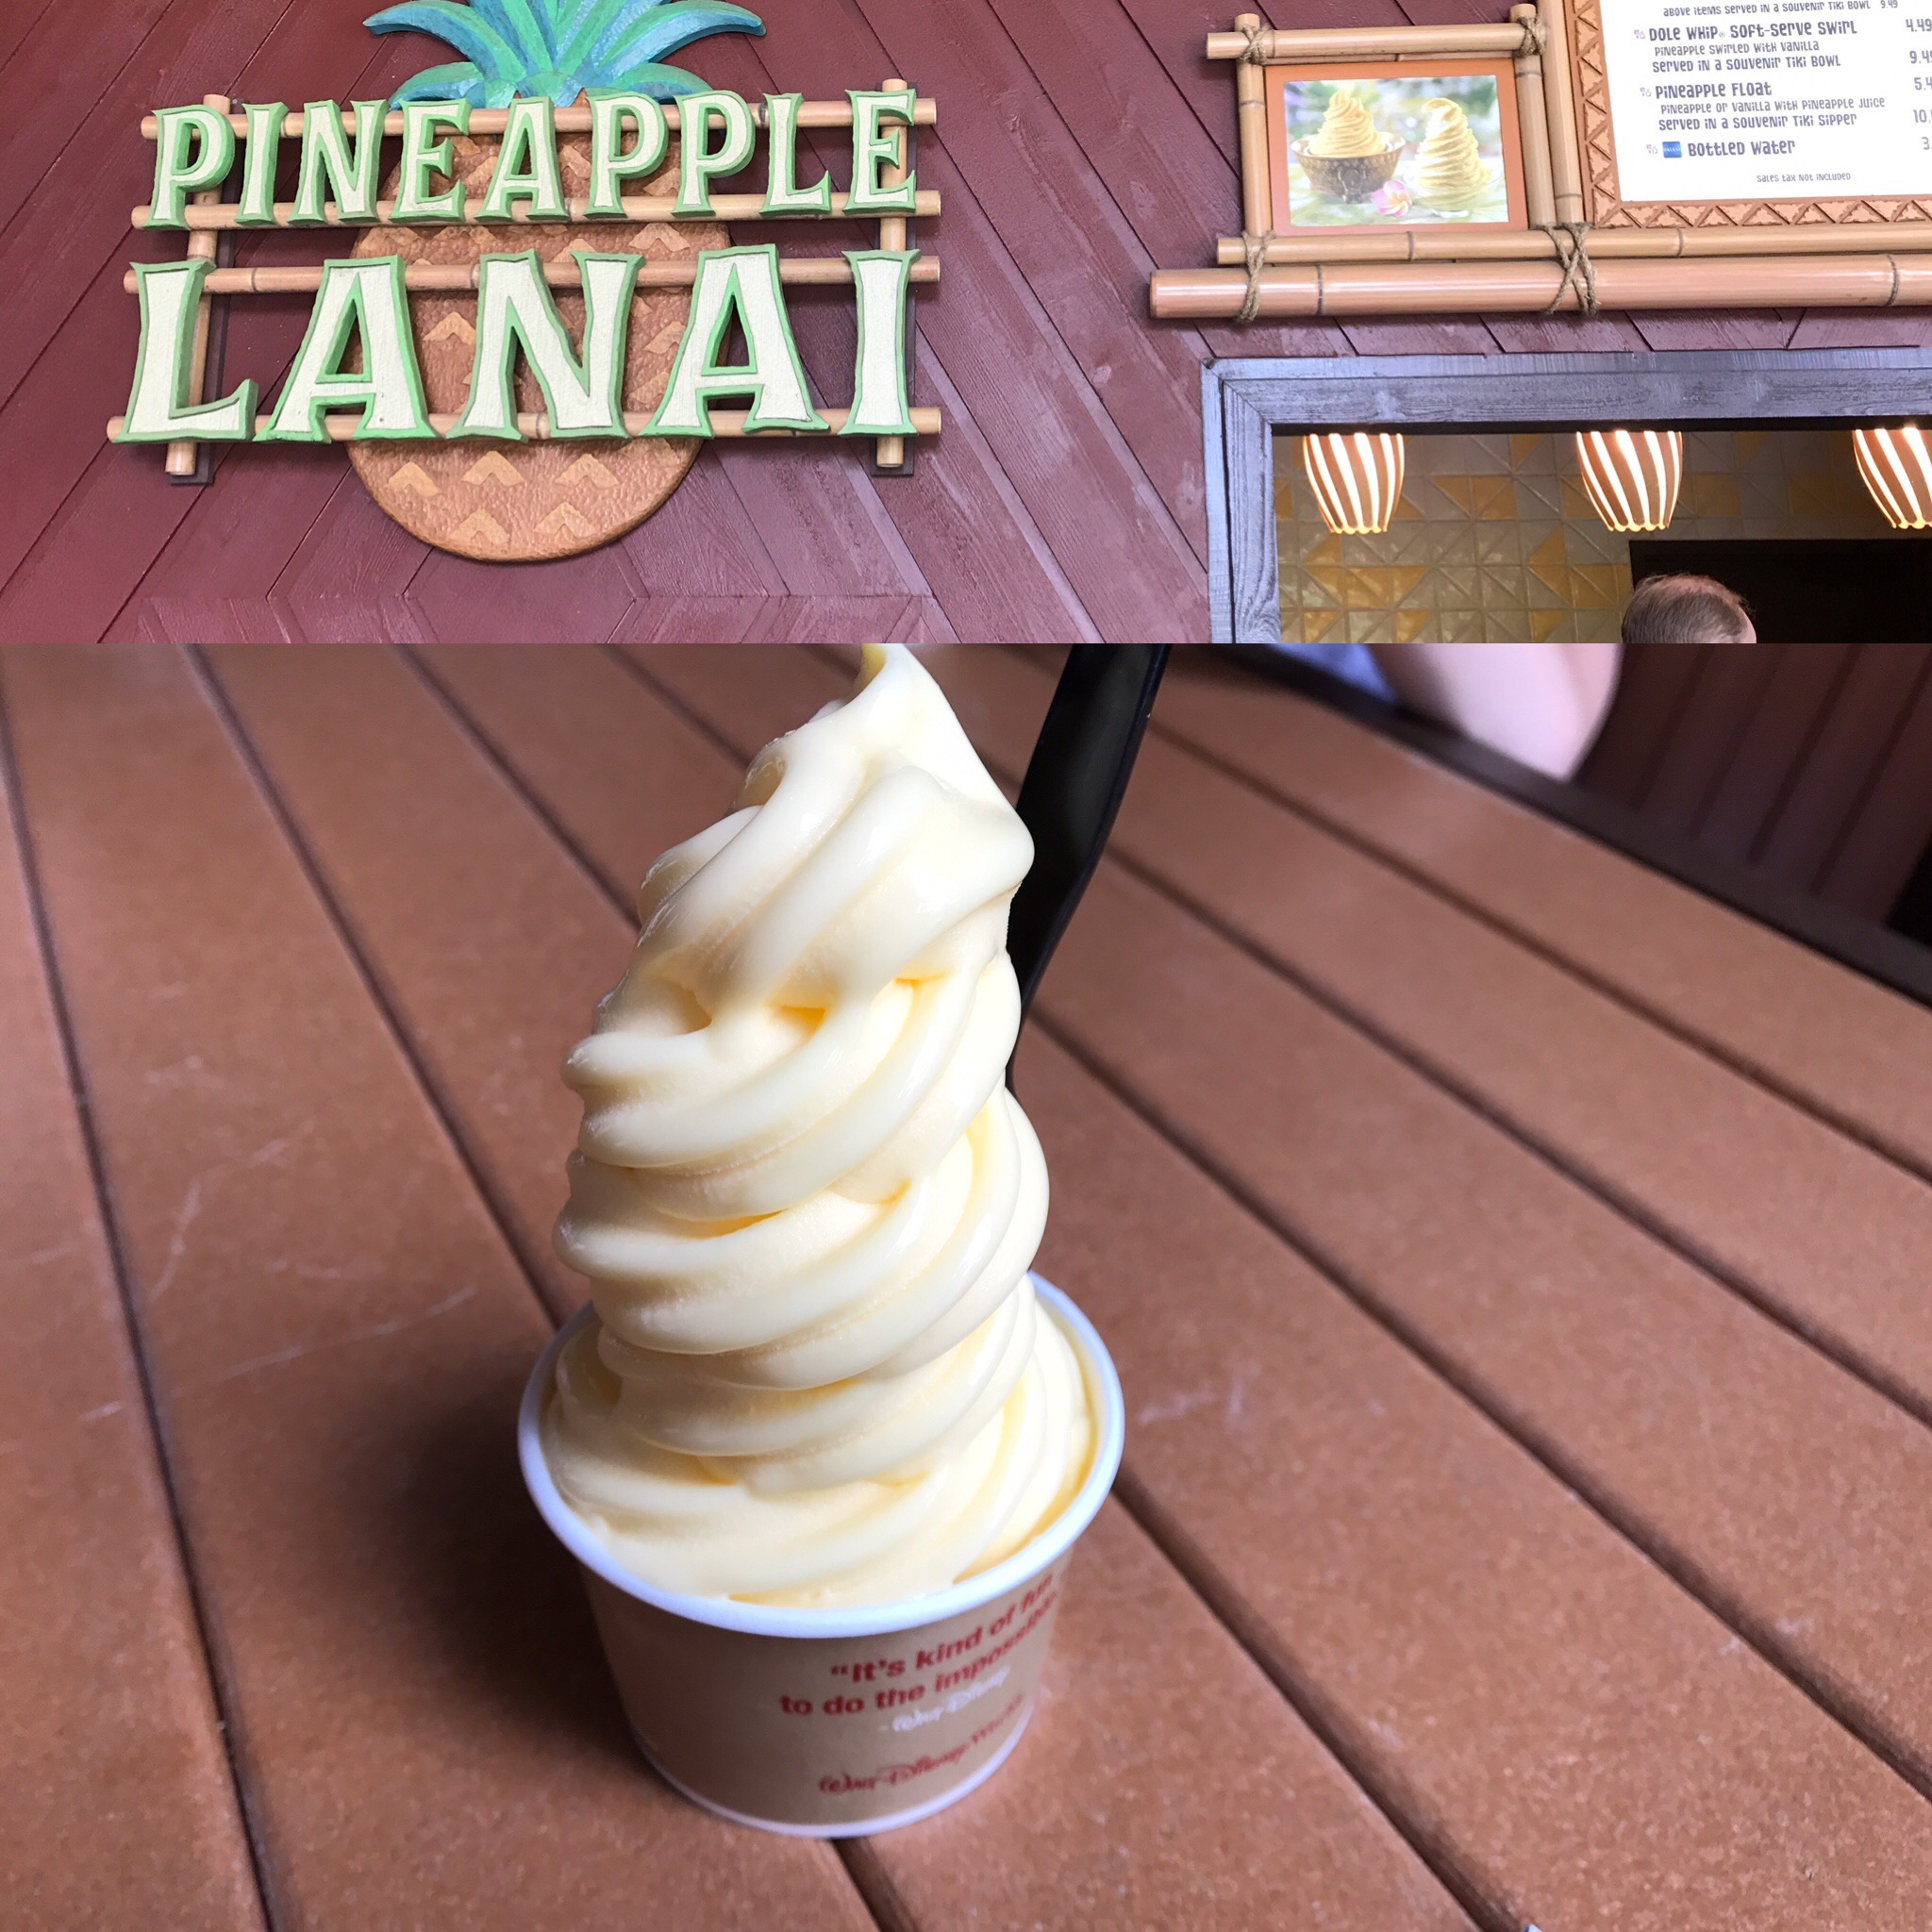 Pineapple Lanai at Disney Polynesian with Dole Whip